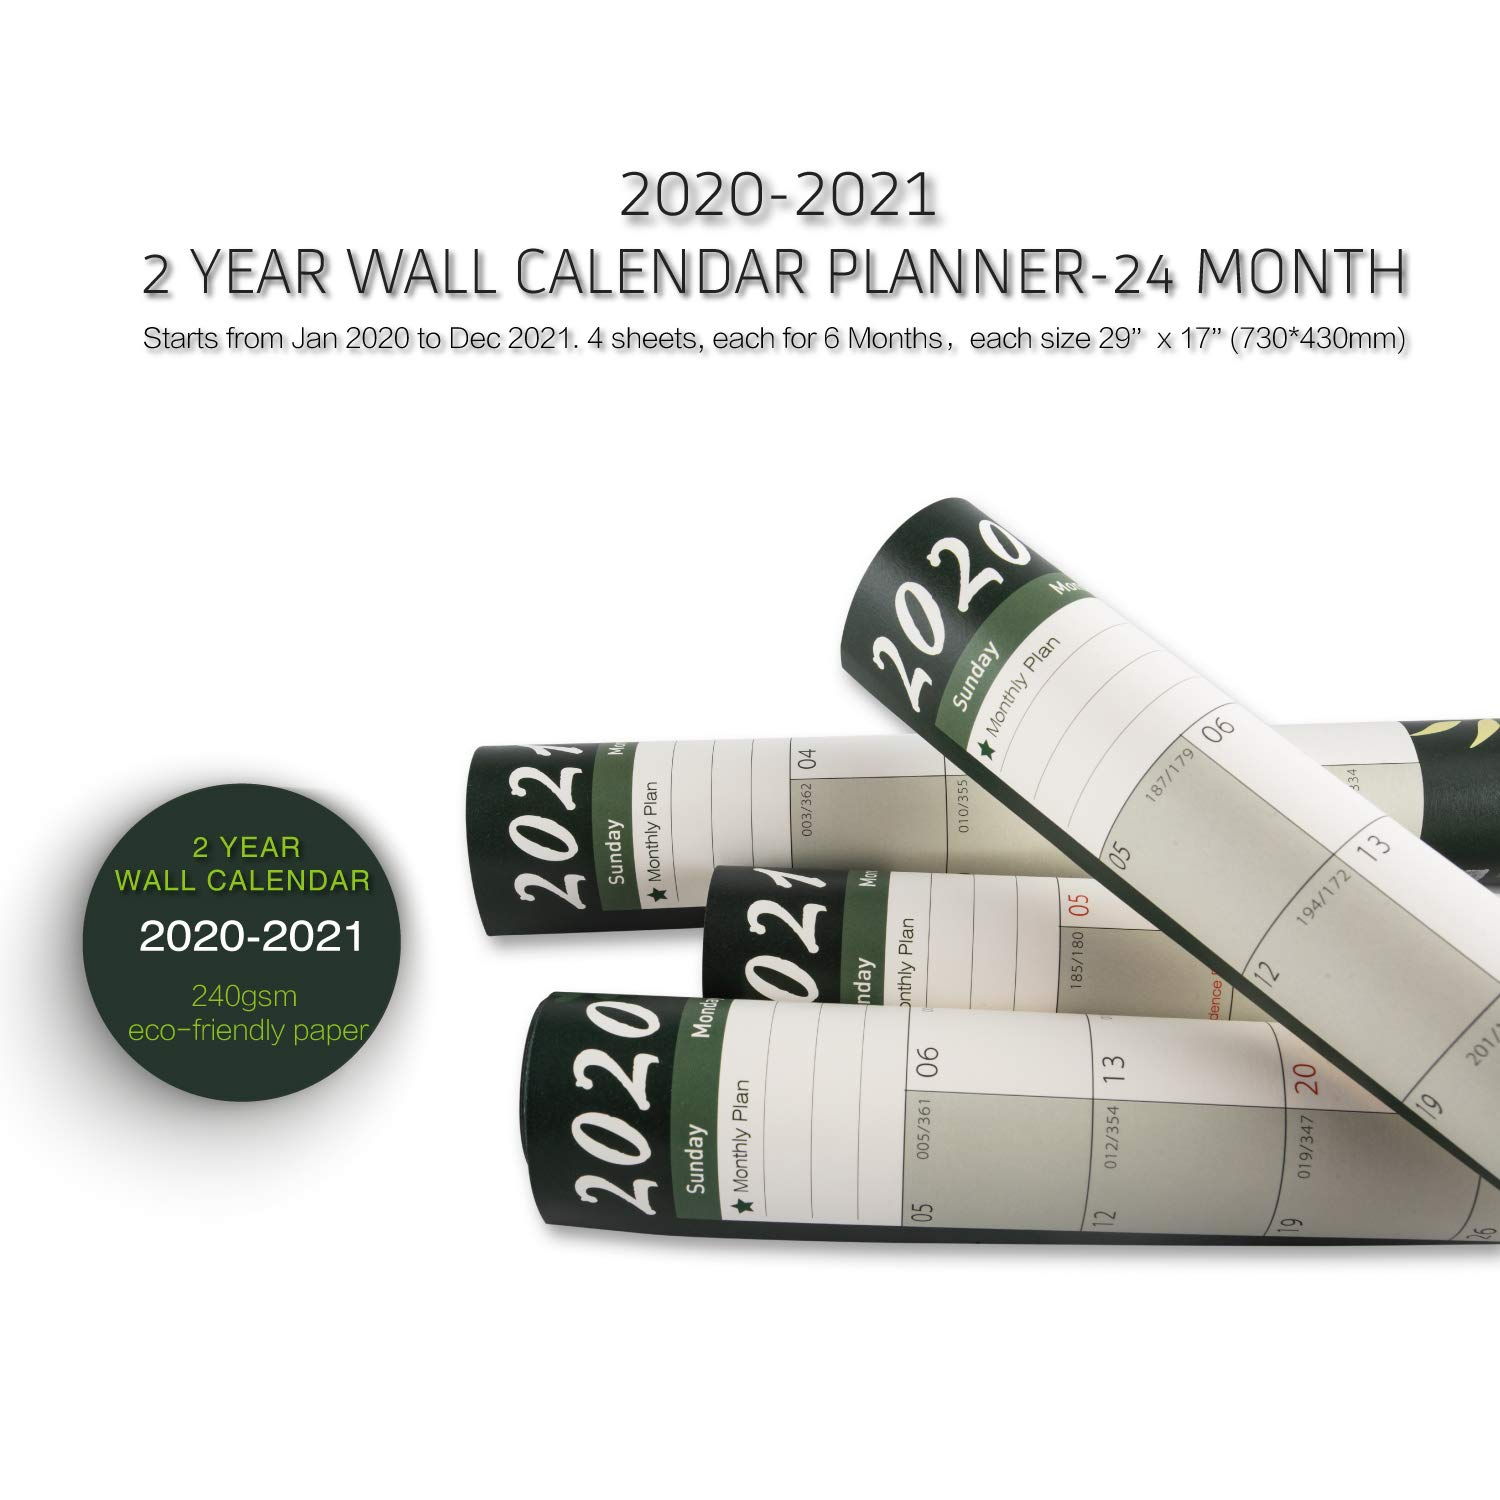 2 Year Wall Calendar 2020-2021. Academic Wall Planner, Teacher Planner, Monthly Planner for Home, Office or School Organization. Runs Jan 2020 to Dec 2021. 4 Sheets, Each for 6 Month-Non-Laminated